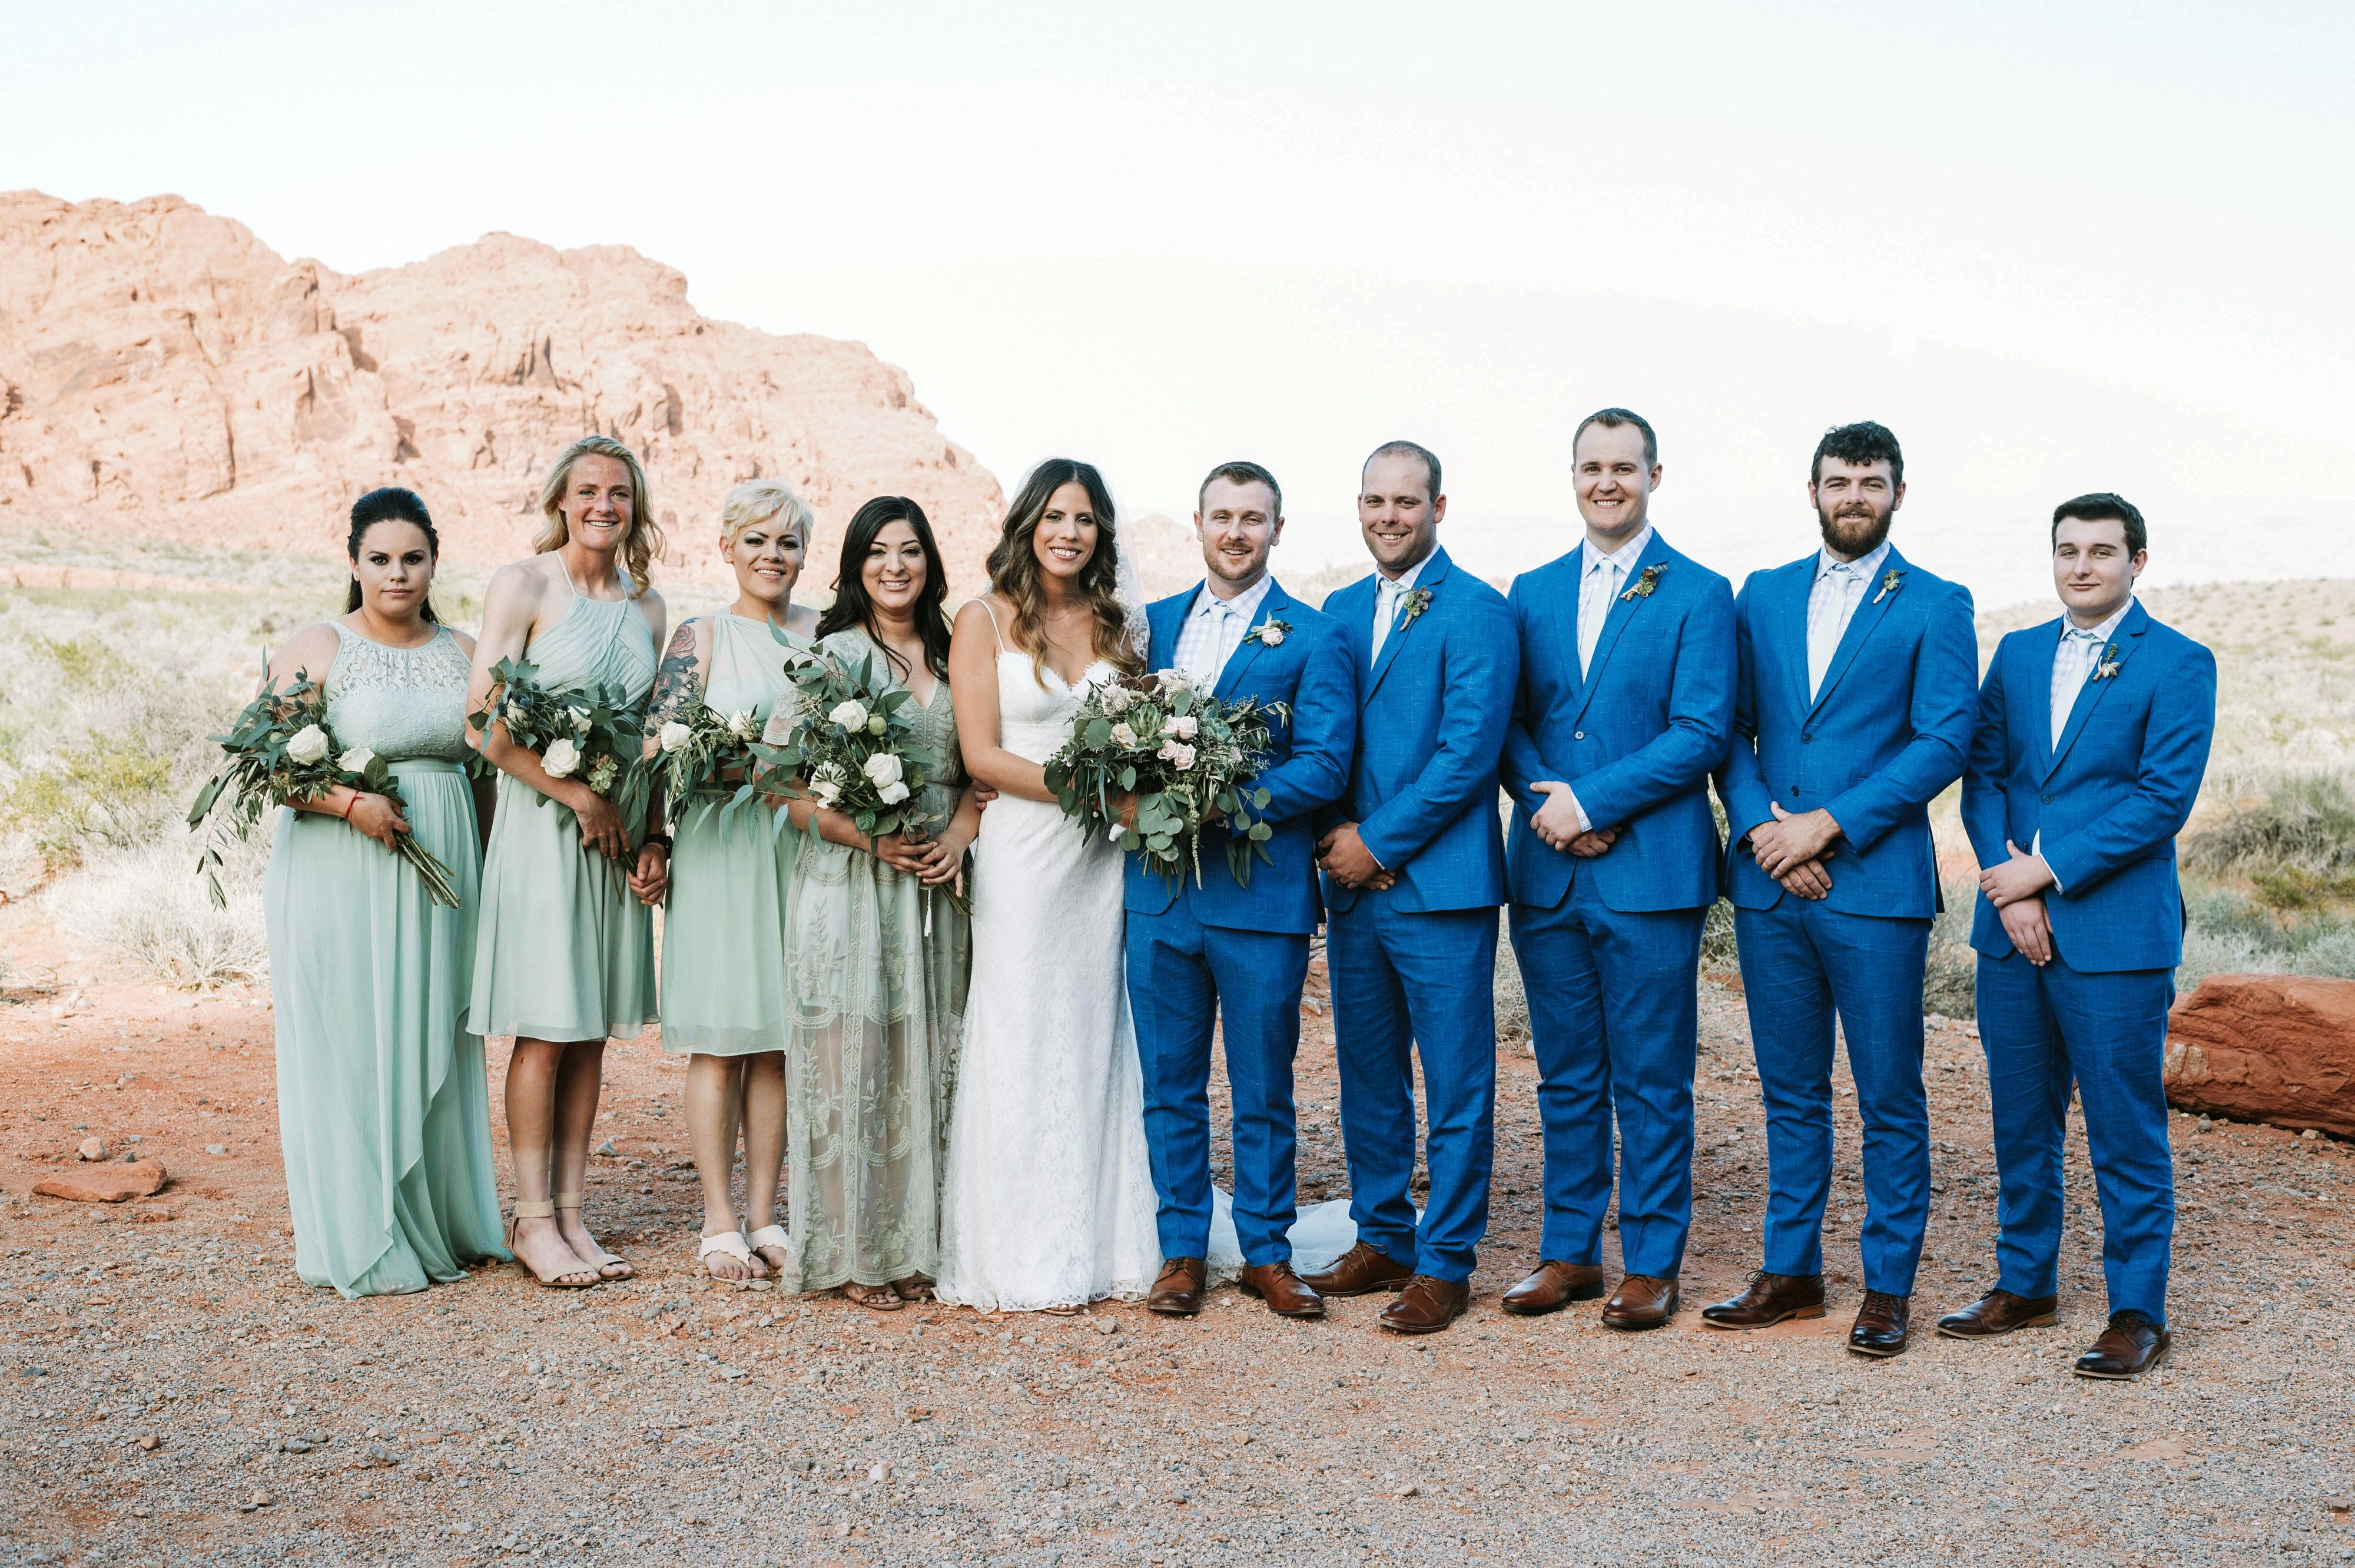 Sage Green Bridesmaids With Blue Suits Groom And Groomsmen Blue Suit Wedding Wedding Groomsmen Attire Groom Blue Suit